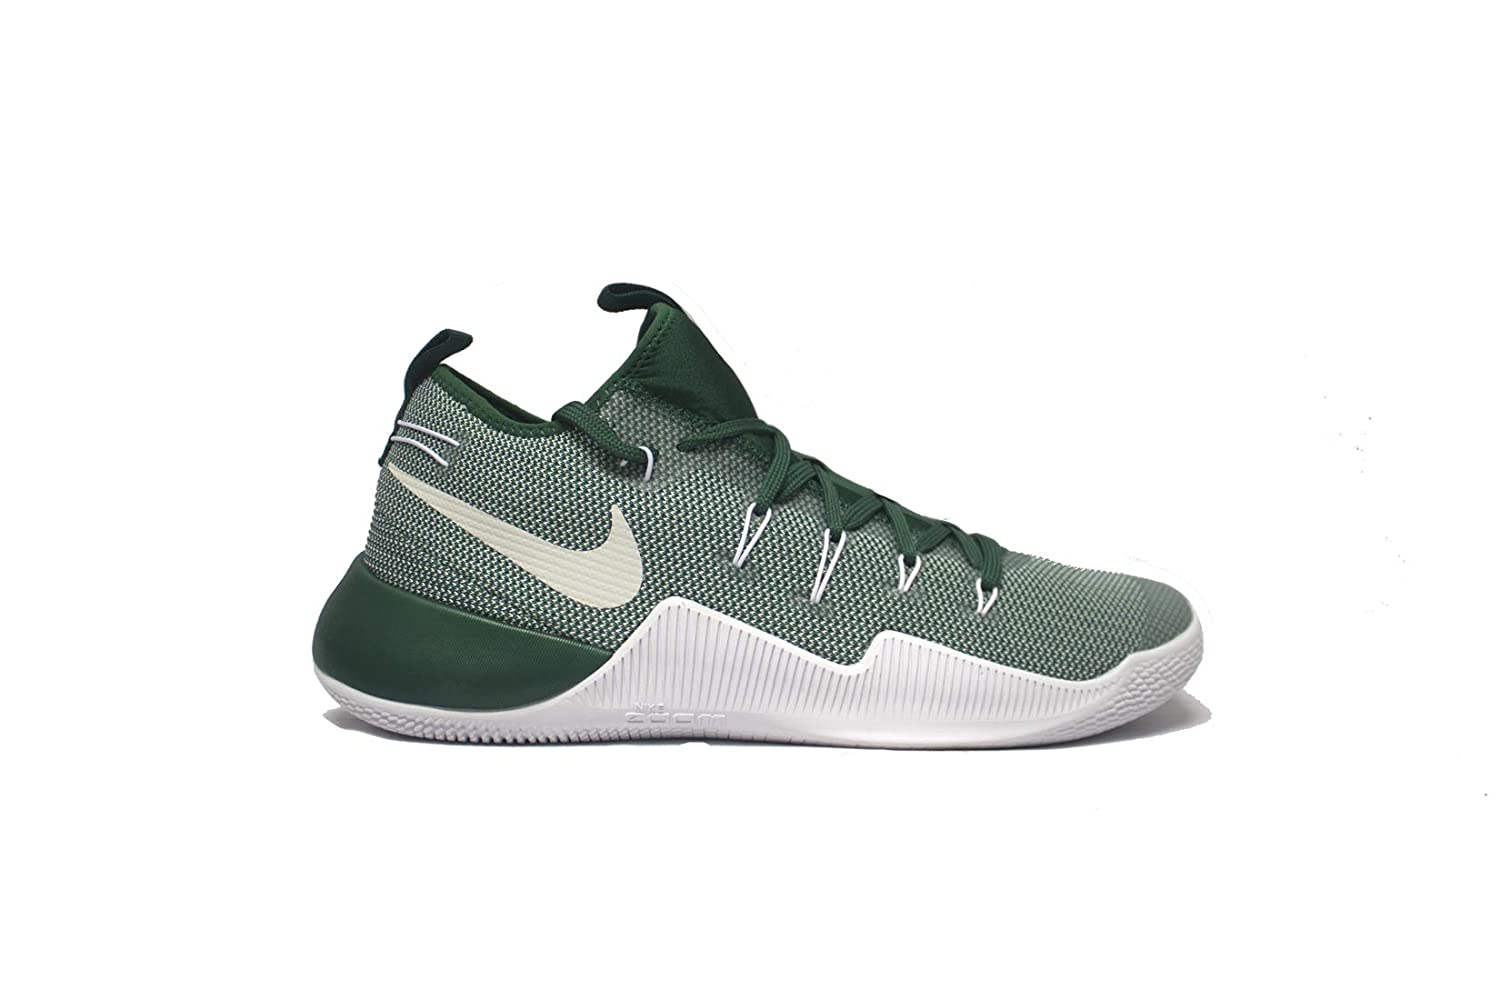 promo code b5e61 a47c2 Nike Hypershift Men s Basketball Shoes (12, Green White)  Amazon.ca  Shoes    Handbags